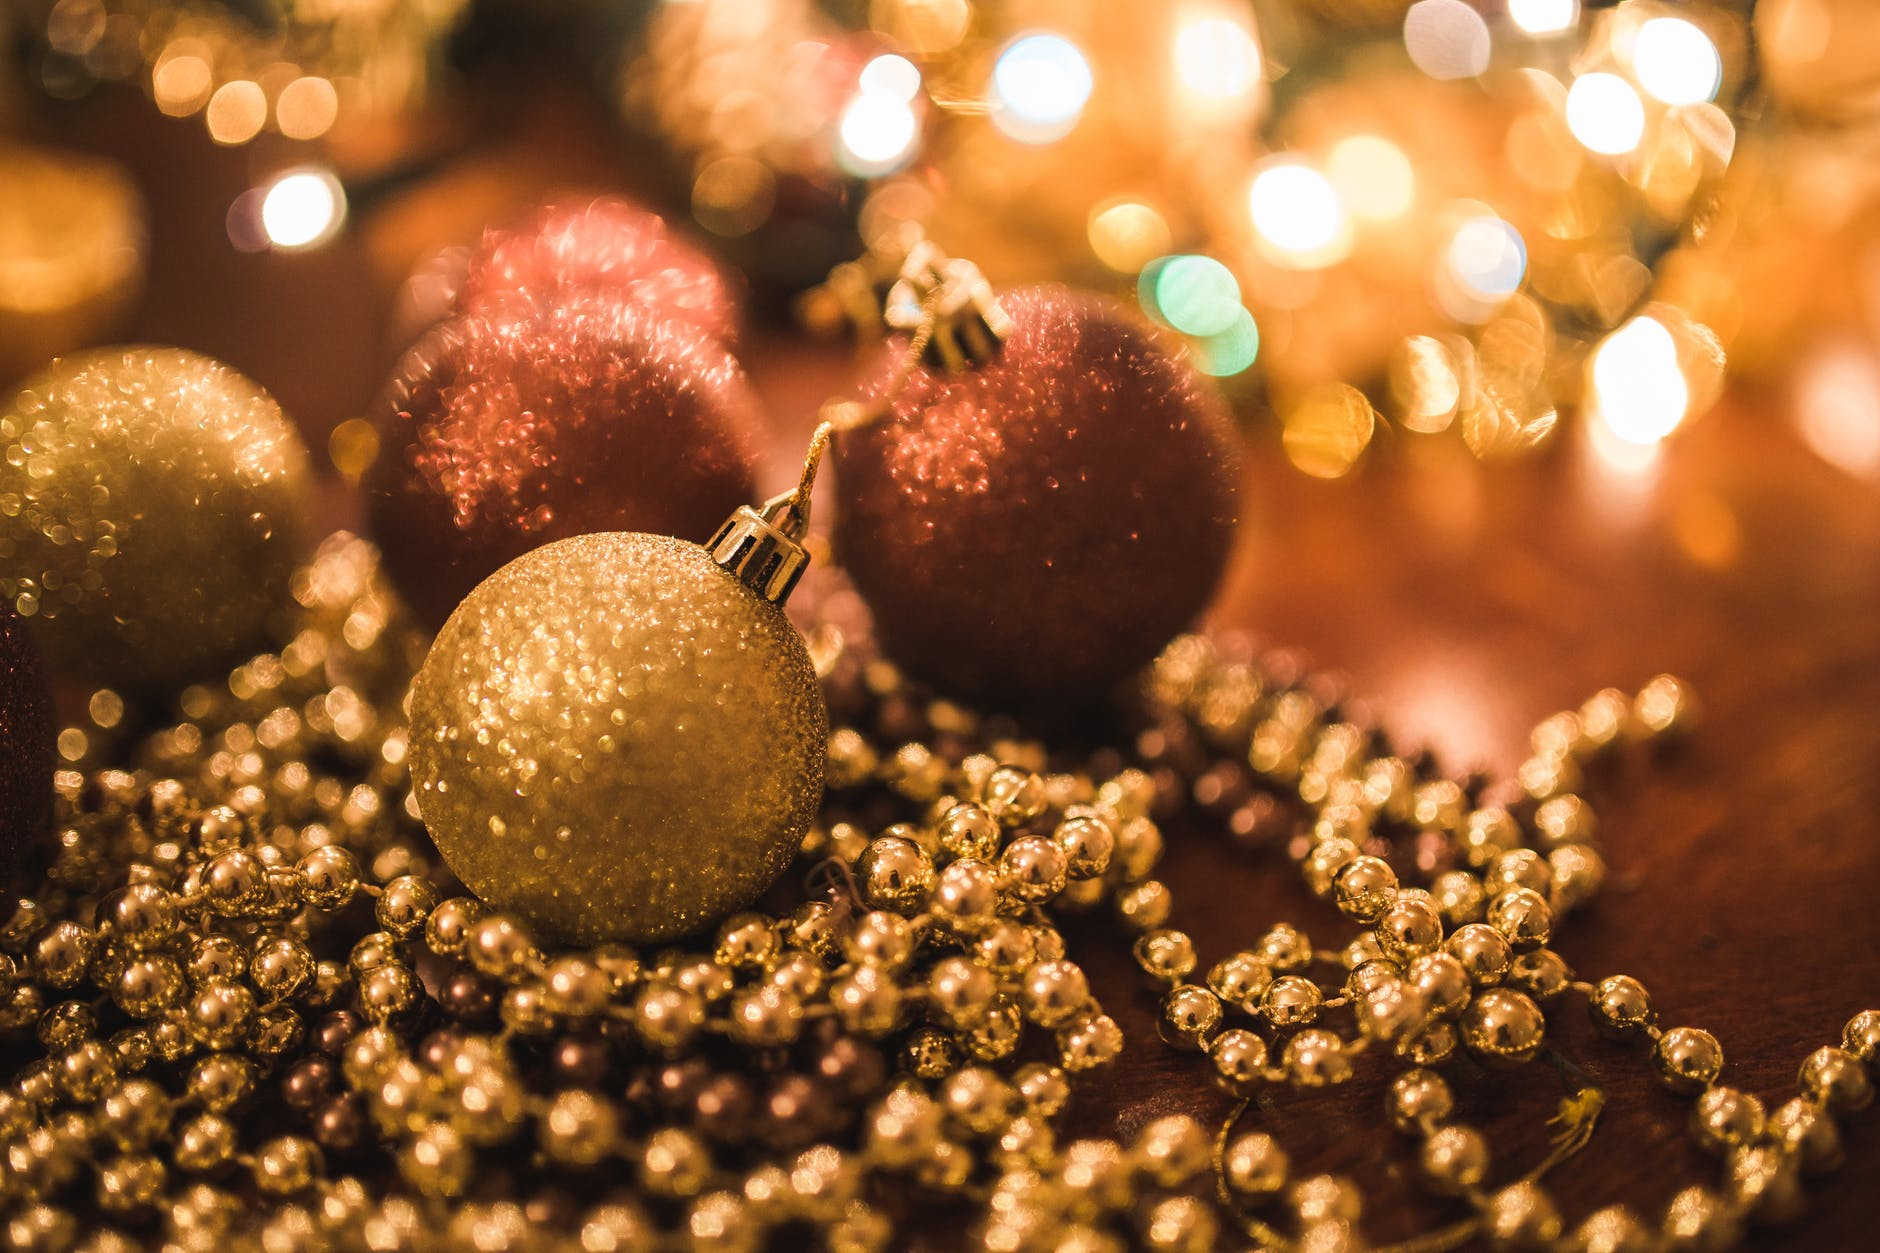 A photo of Christmas ornaments sitting on a table. Photo by pexels user Kaboompics.com. Used courtesy of Pexels.com.